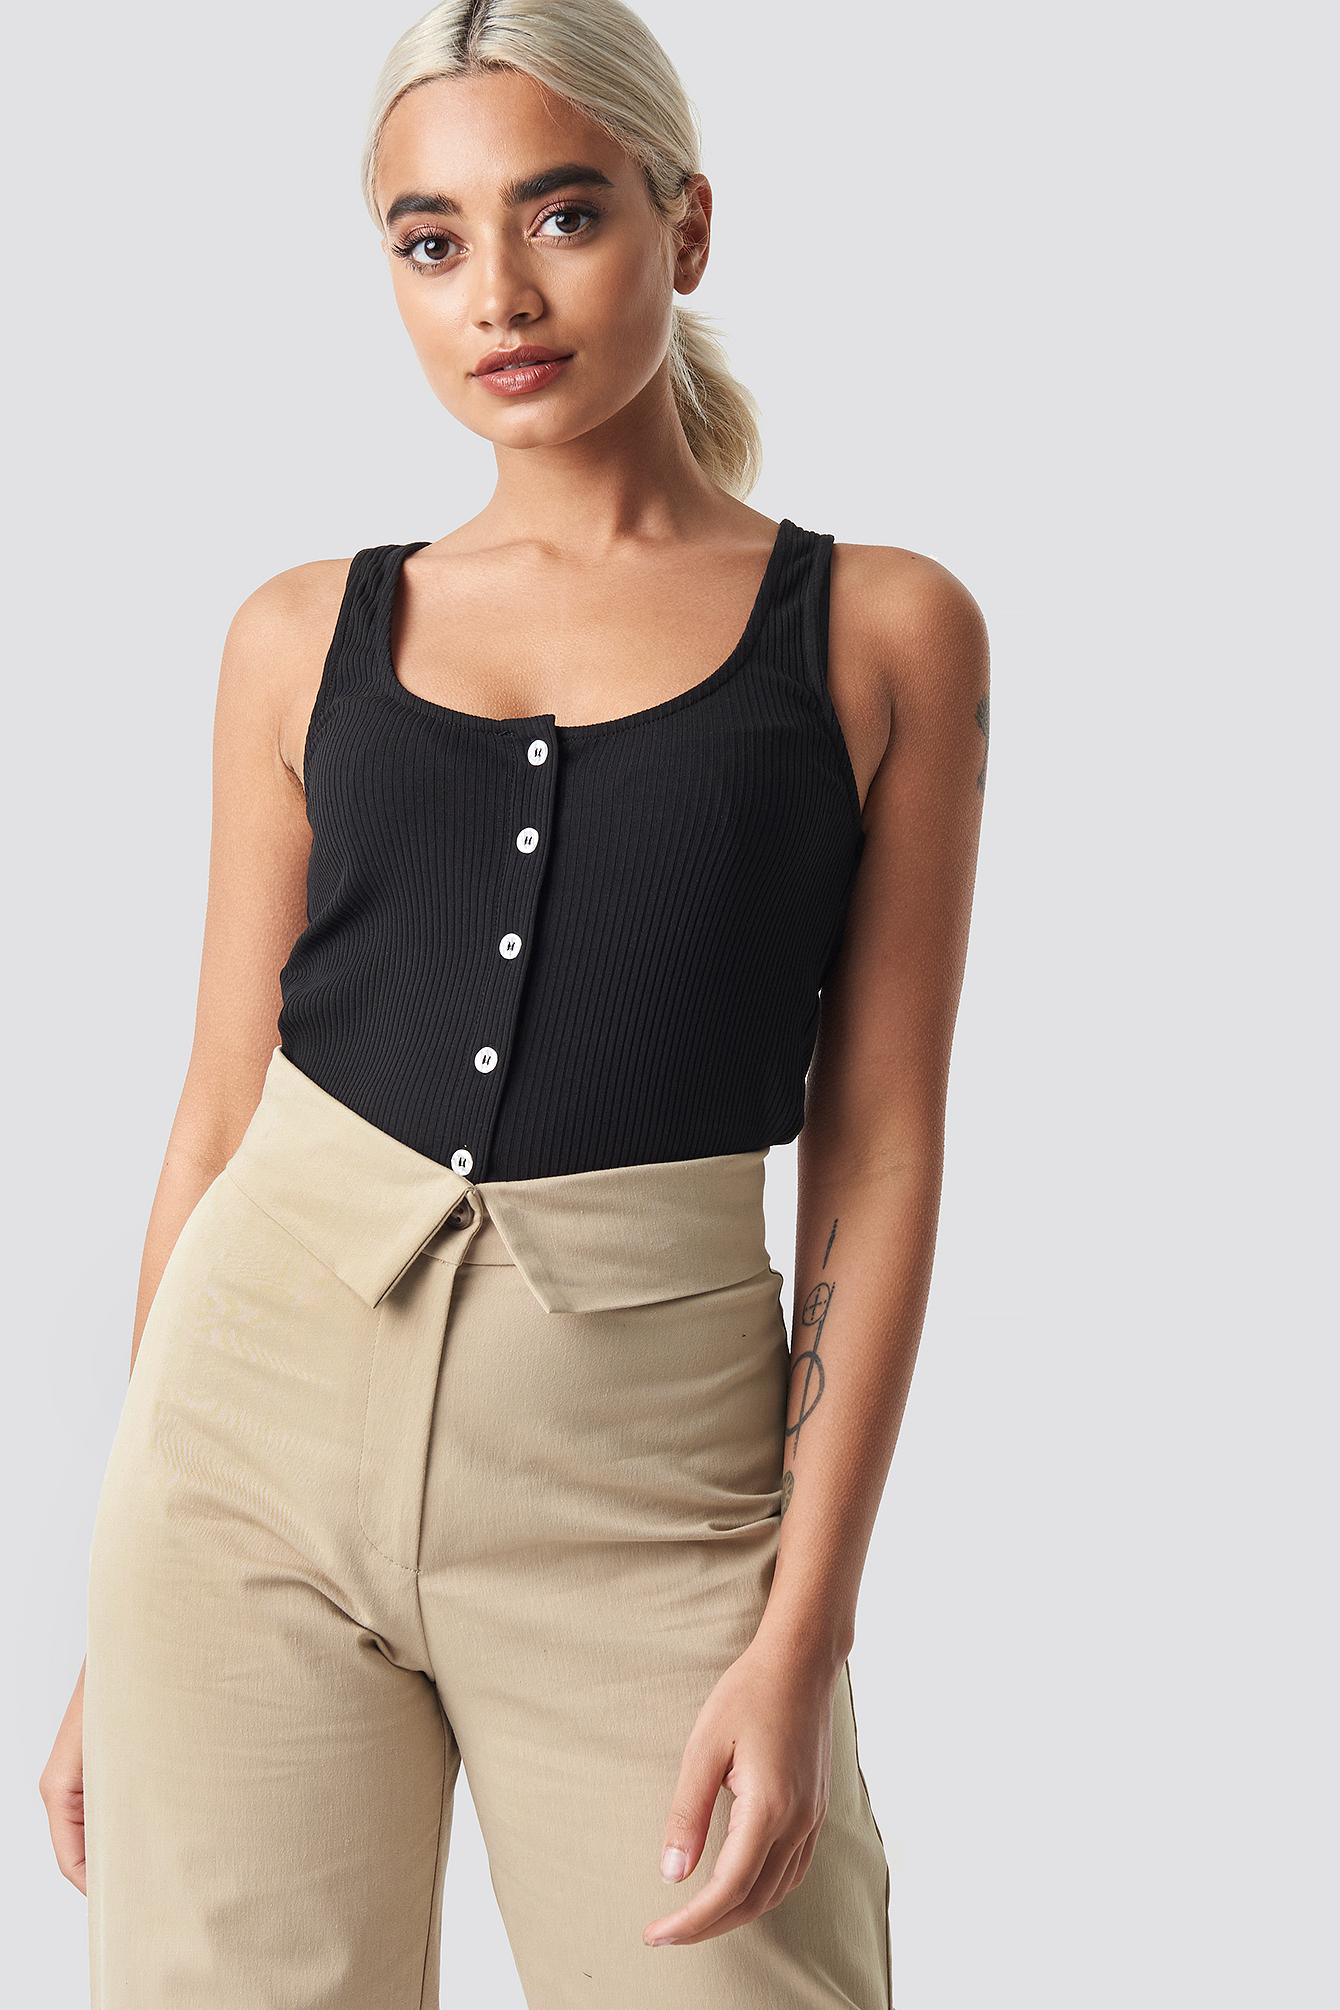 9b7cb9d04c7 Lyst - NA-KD Ribbed Cropped Button Top Black in Black